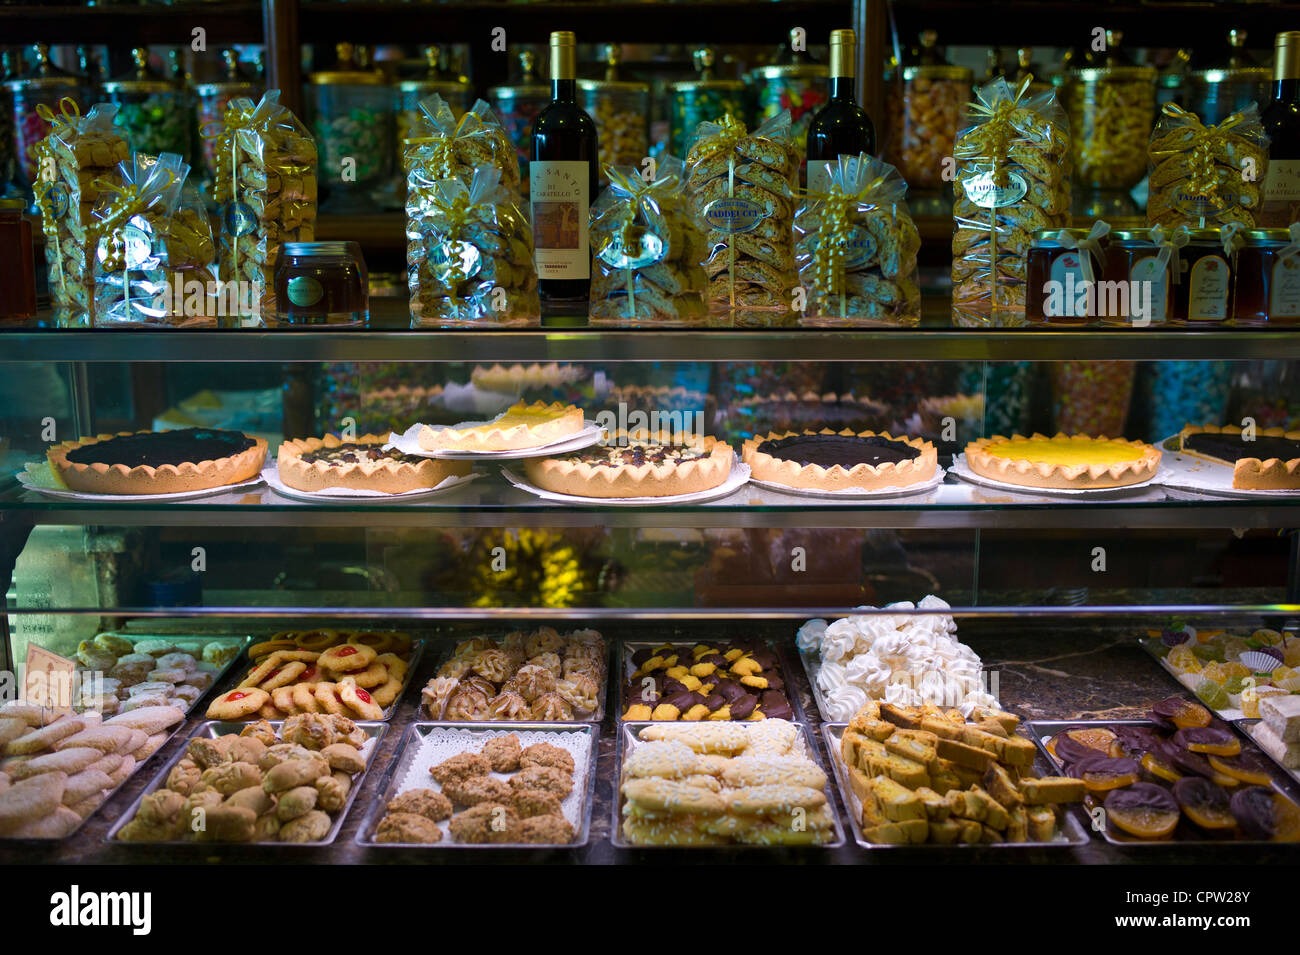 Cakes and pastries in Fabbrica Taddeucci patisserie shop and cafe in Piazza San Michele, Lucca, Italy - Stock Image